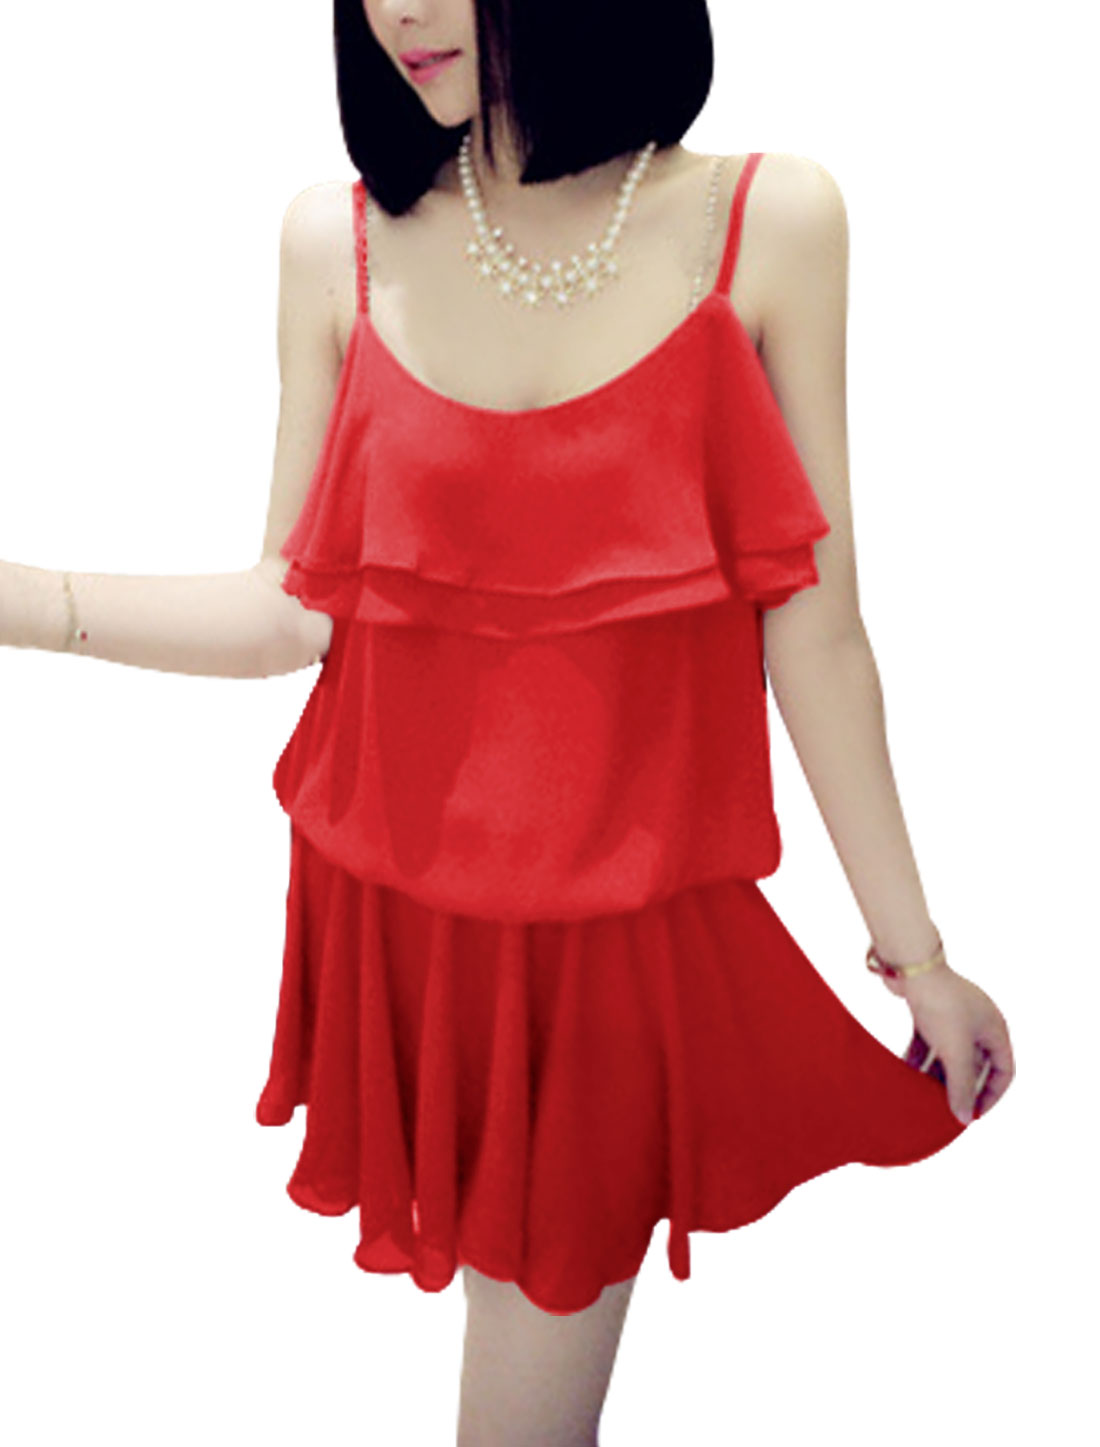 Lady Slipover Scoop Neck Tiered Flouncing Top Dress Red S